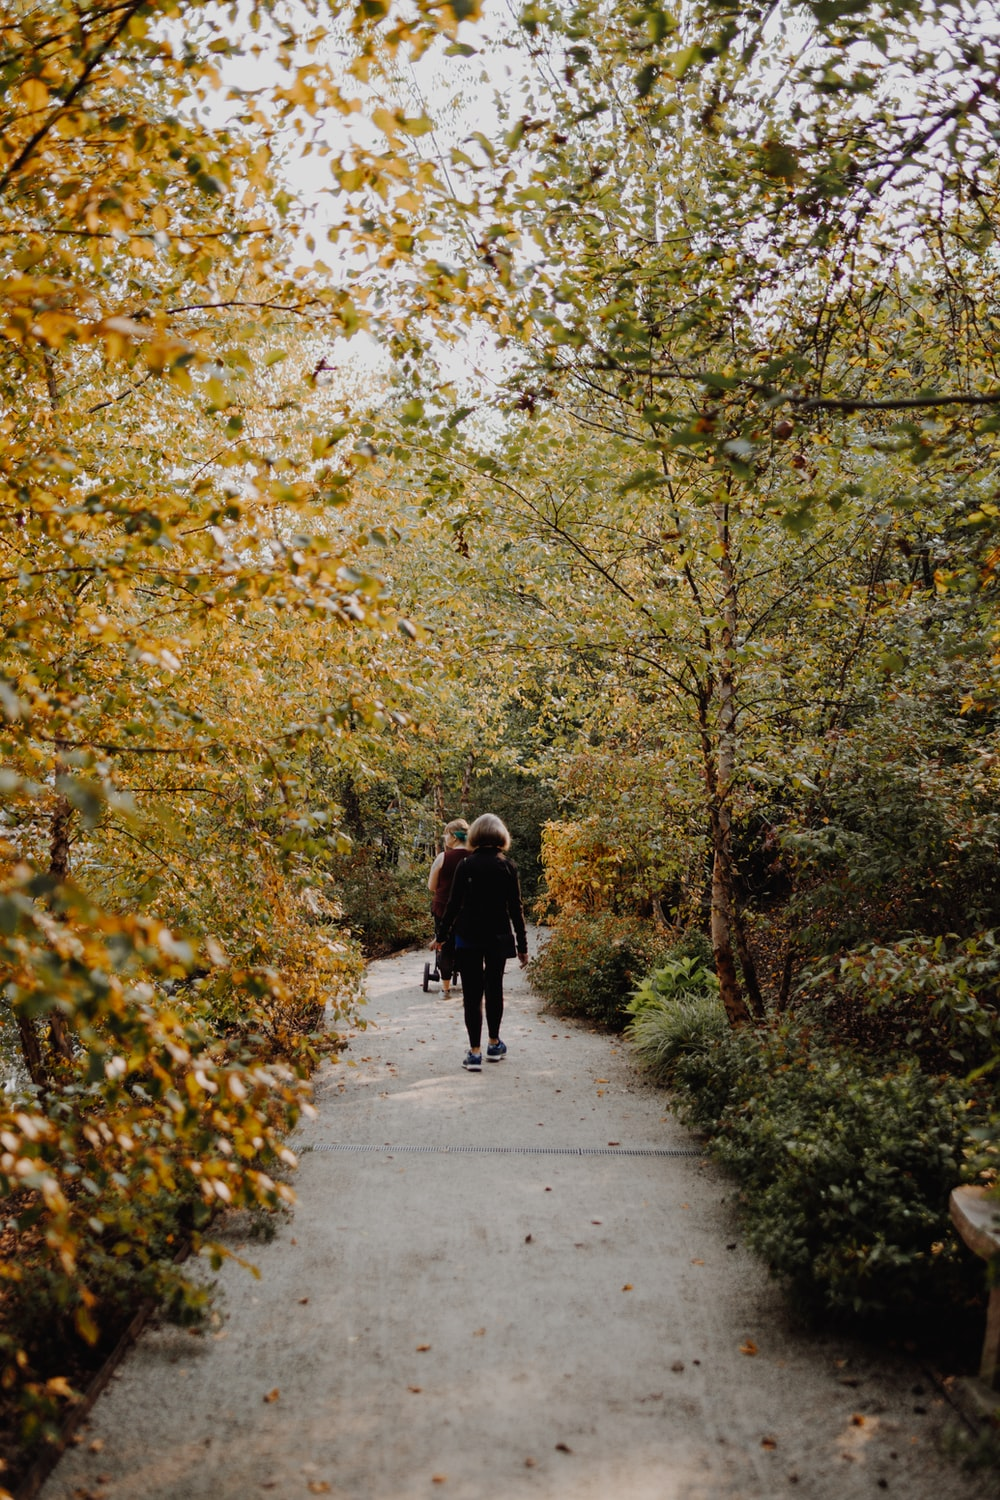 man and woman walking on gray concrete road between green and yellow trees during daytime